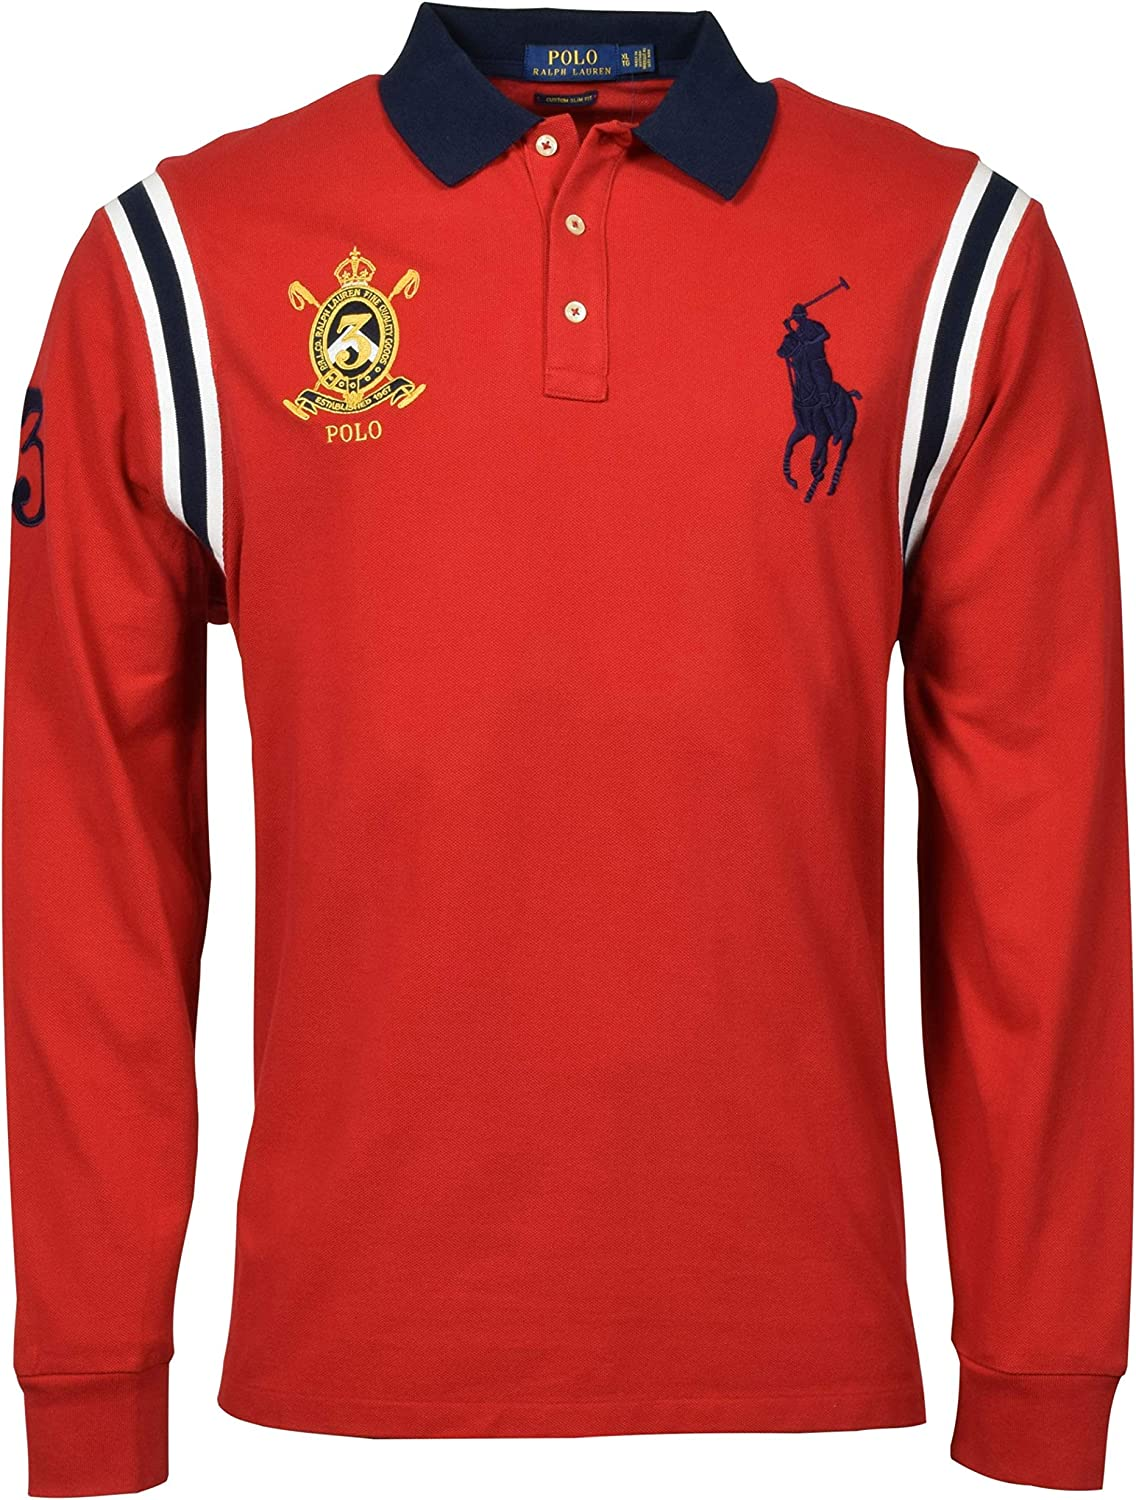 dentista nulla occupato  Polo Ralph Lauren Men's Custom Slim Fit Long Sleeve Big Pony Polo Shirt - M  - Red at Amazon Men's Clothing store